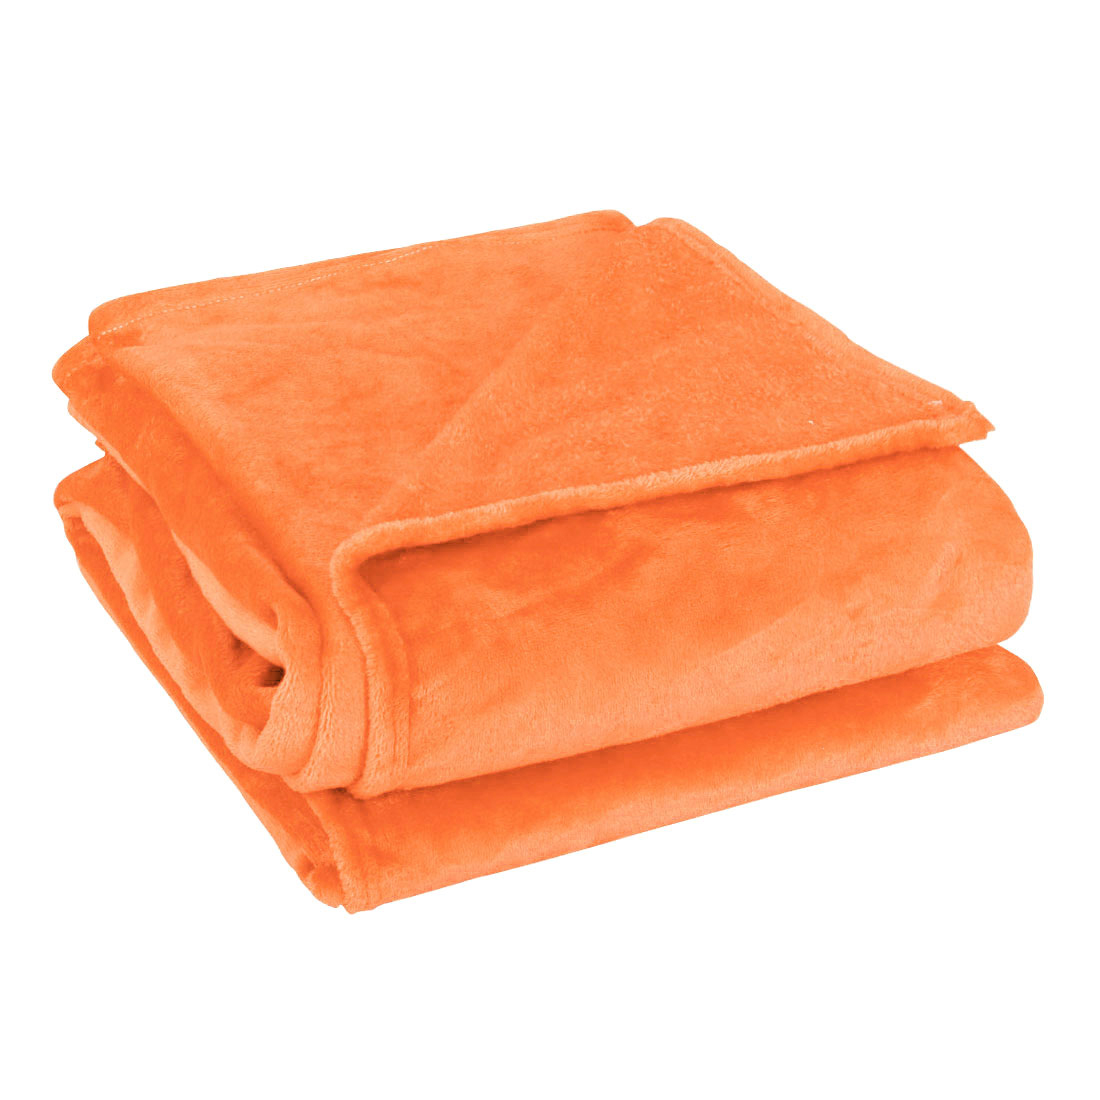 2 x 2.3M Queen Size Home Bedroom Bed Sofa Warm Plush Couch Throws Blanket Soft Orange